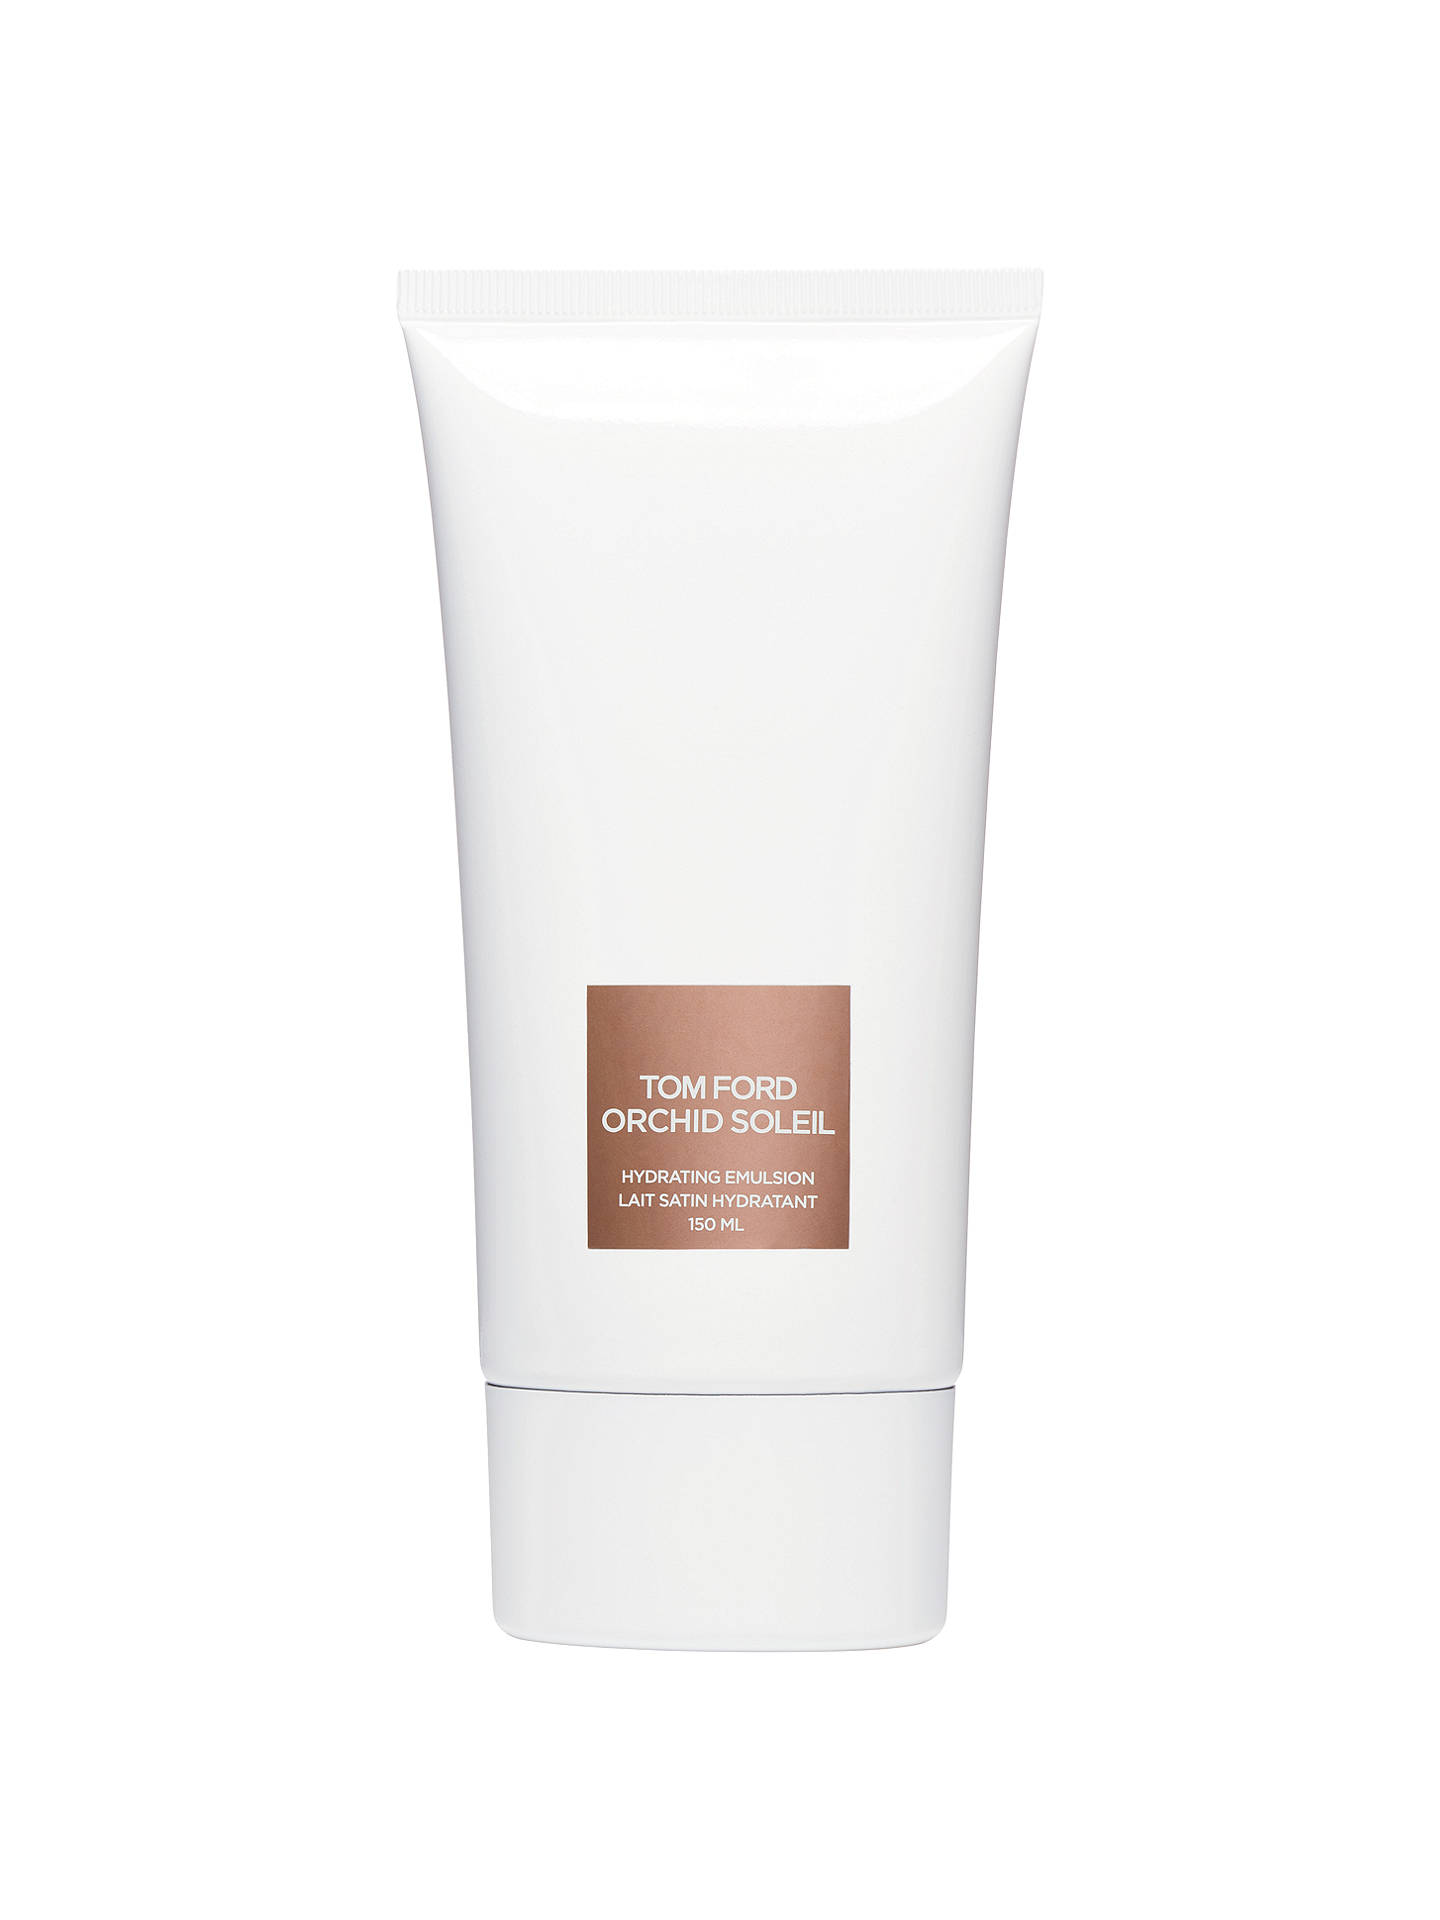 BuyTOM FORD Orchid Soleil Hydrating Emulsion, 150ml Online at johnlewis.com